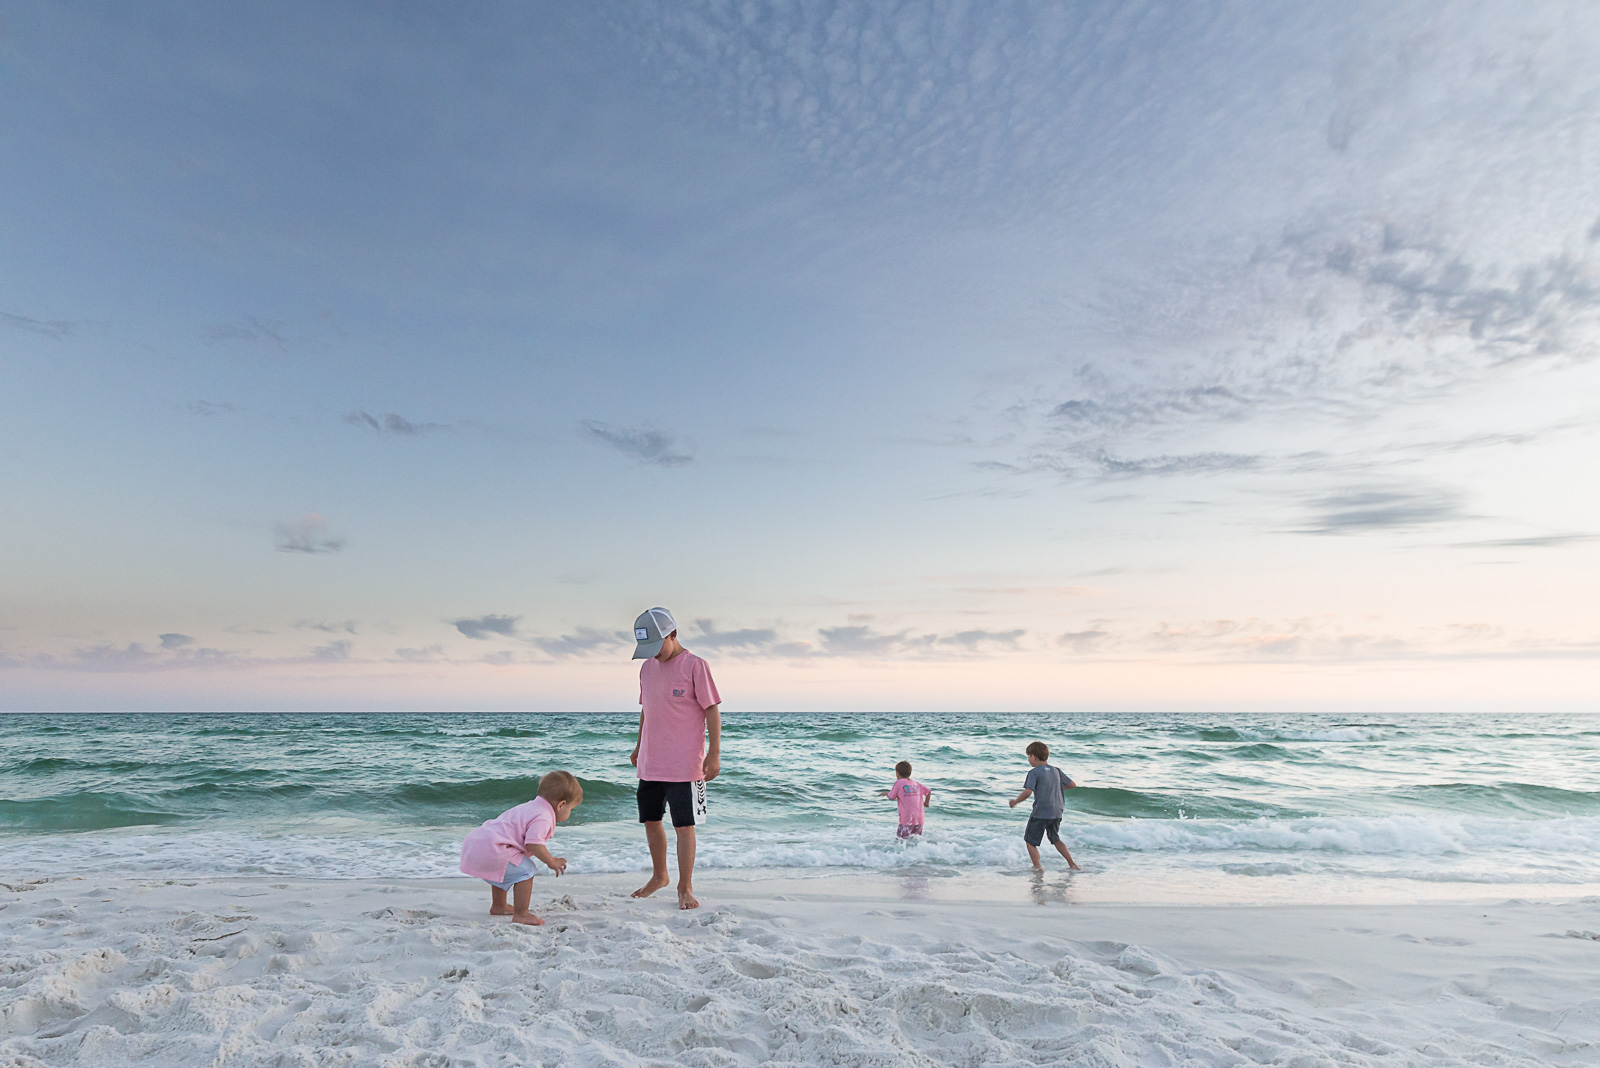 children playing in sand and water at beach megan arndt clickin moms member story